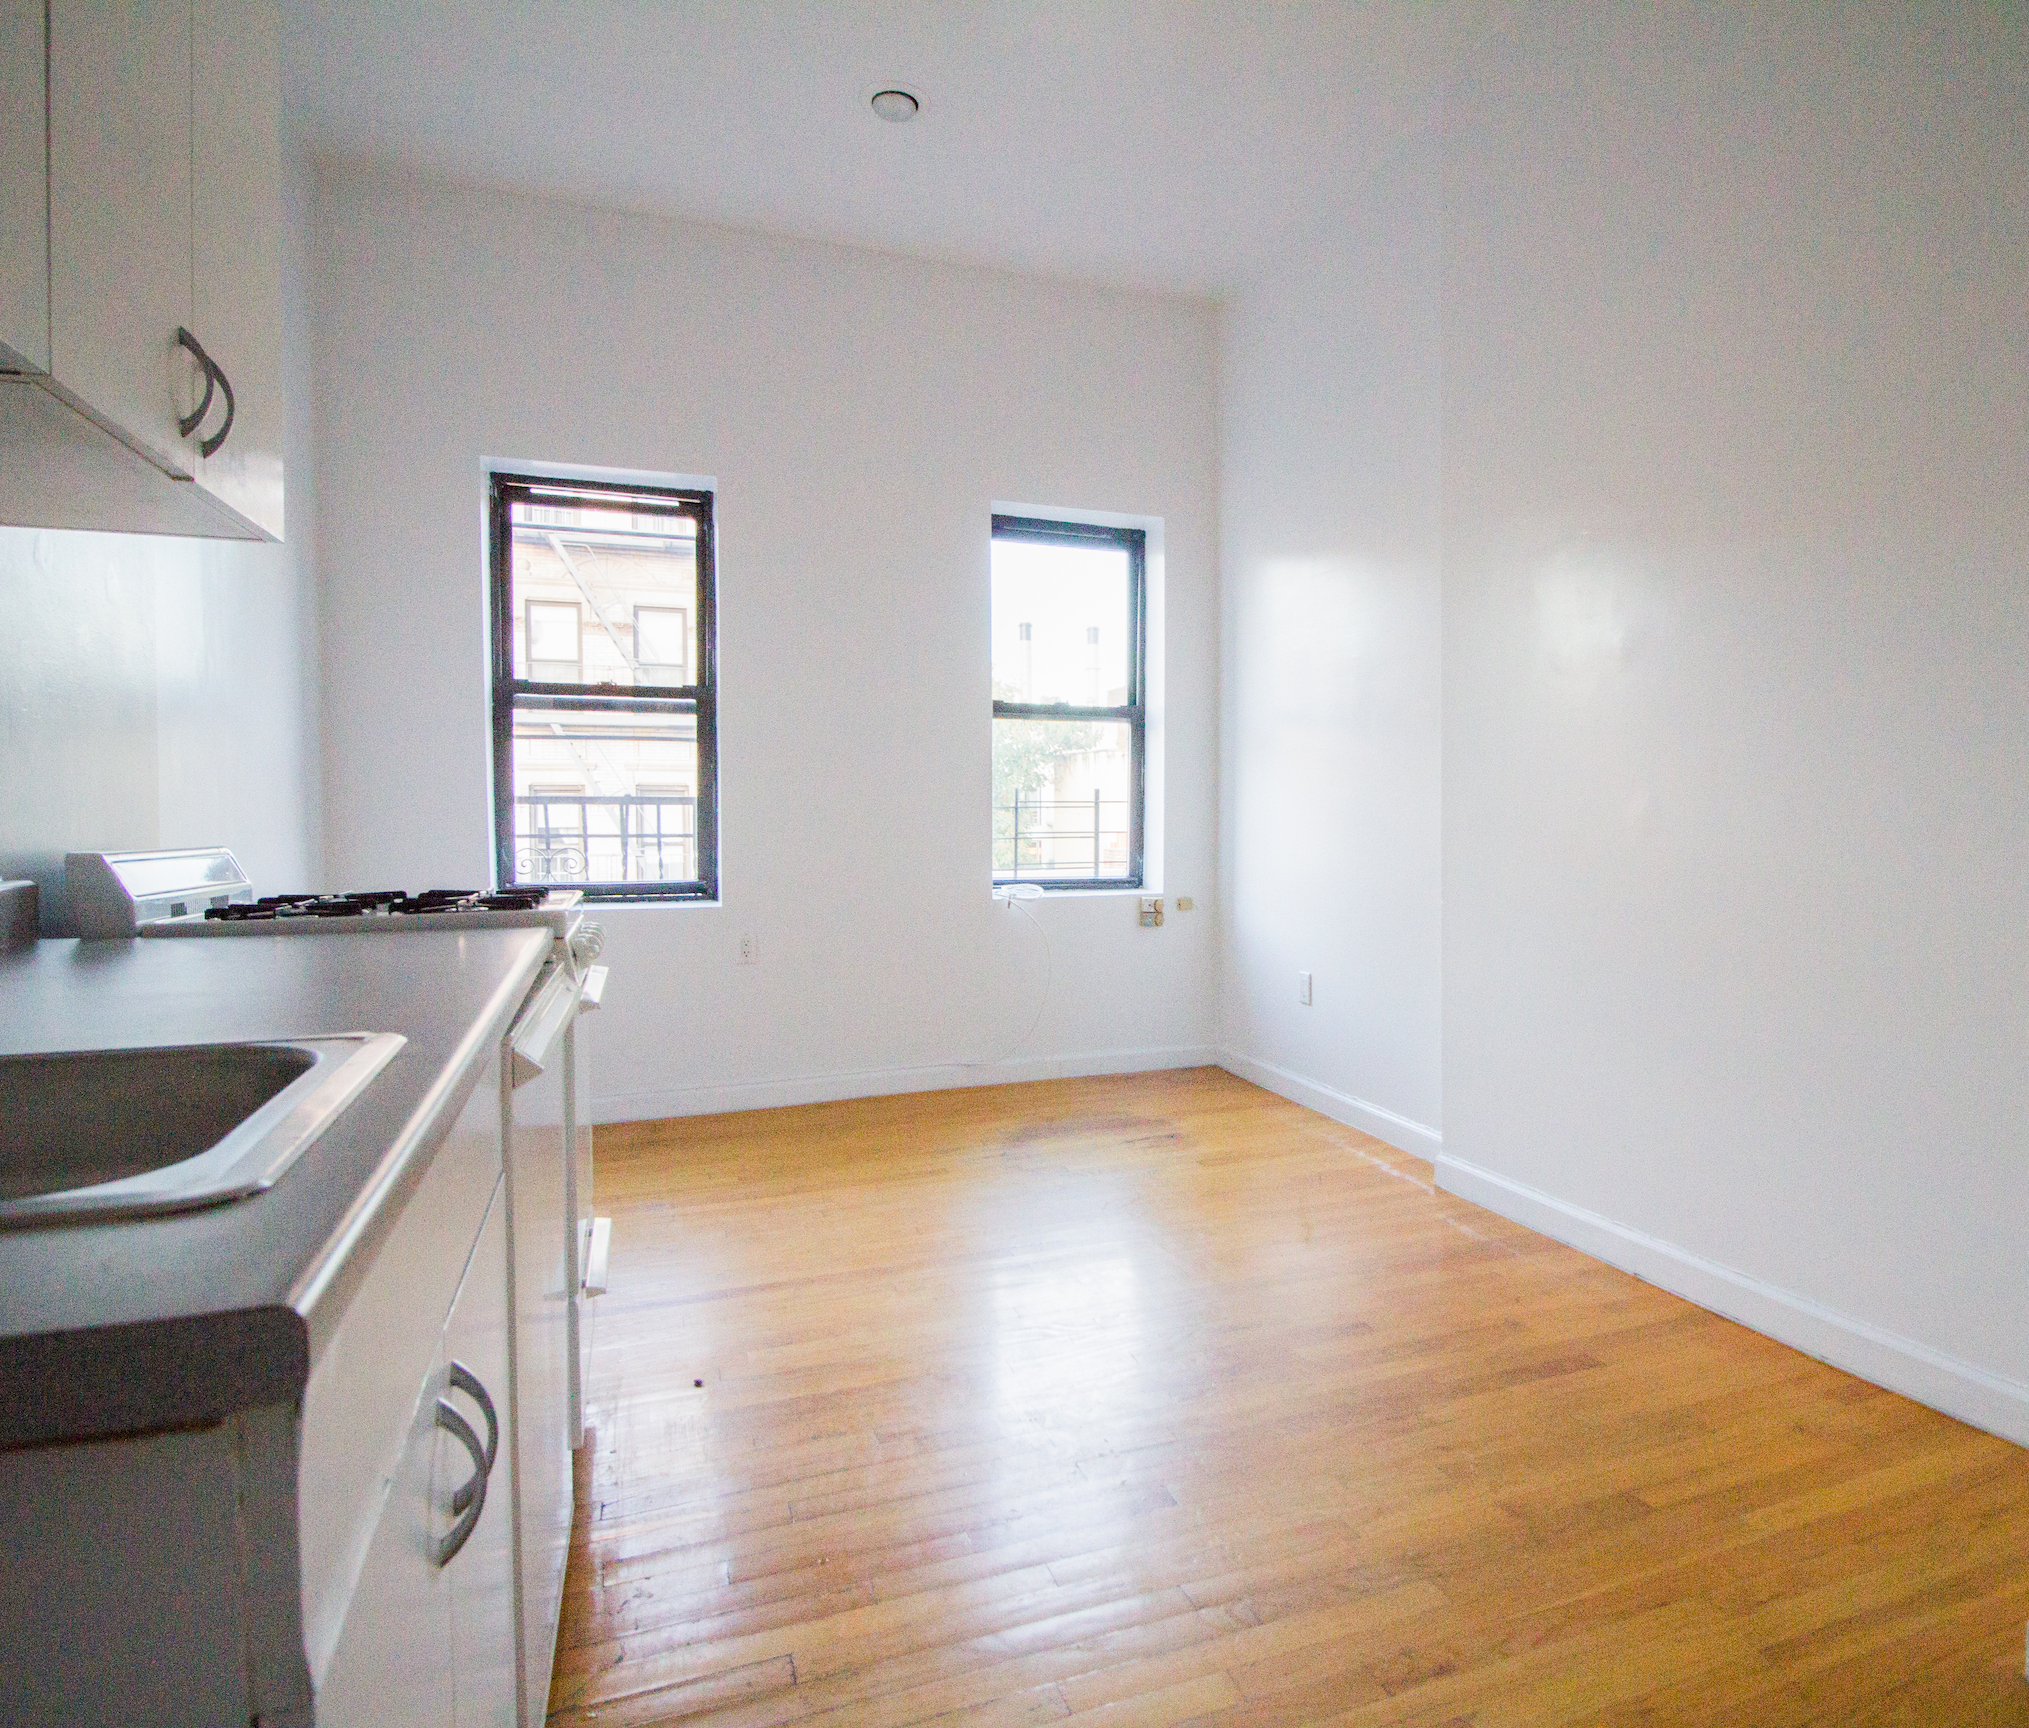 236 E 7th Street #5B - *Spacious Bright 1 Bed in East Village*Charming tree line St*True 1 Bedroom offering great space, high ceilings, light, hardwood floors throughout. Open kitchenette, quiet bedroom with en suite bathroom. Located on the 5th floor of a walk up building on a tree line street in East Village, steps away from major restaurants, stores, entertainment, parks and several subway lines. Pets case by caseRent: $1,795 /monthTerms: 12 - 12 MonthsAvailable: Immediate